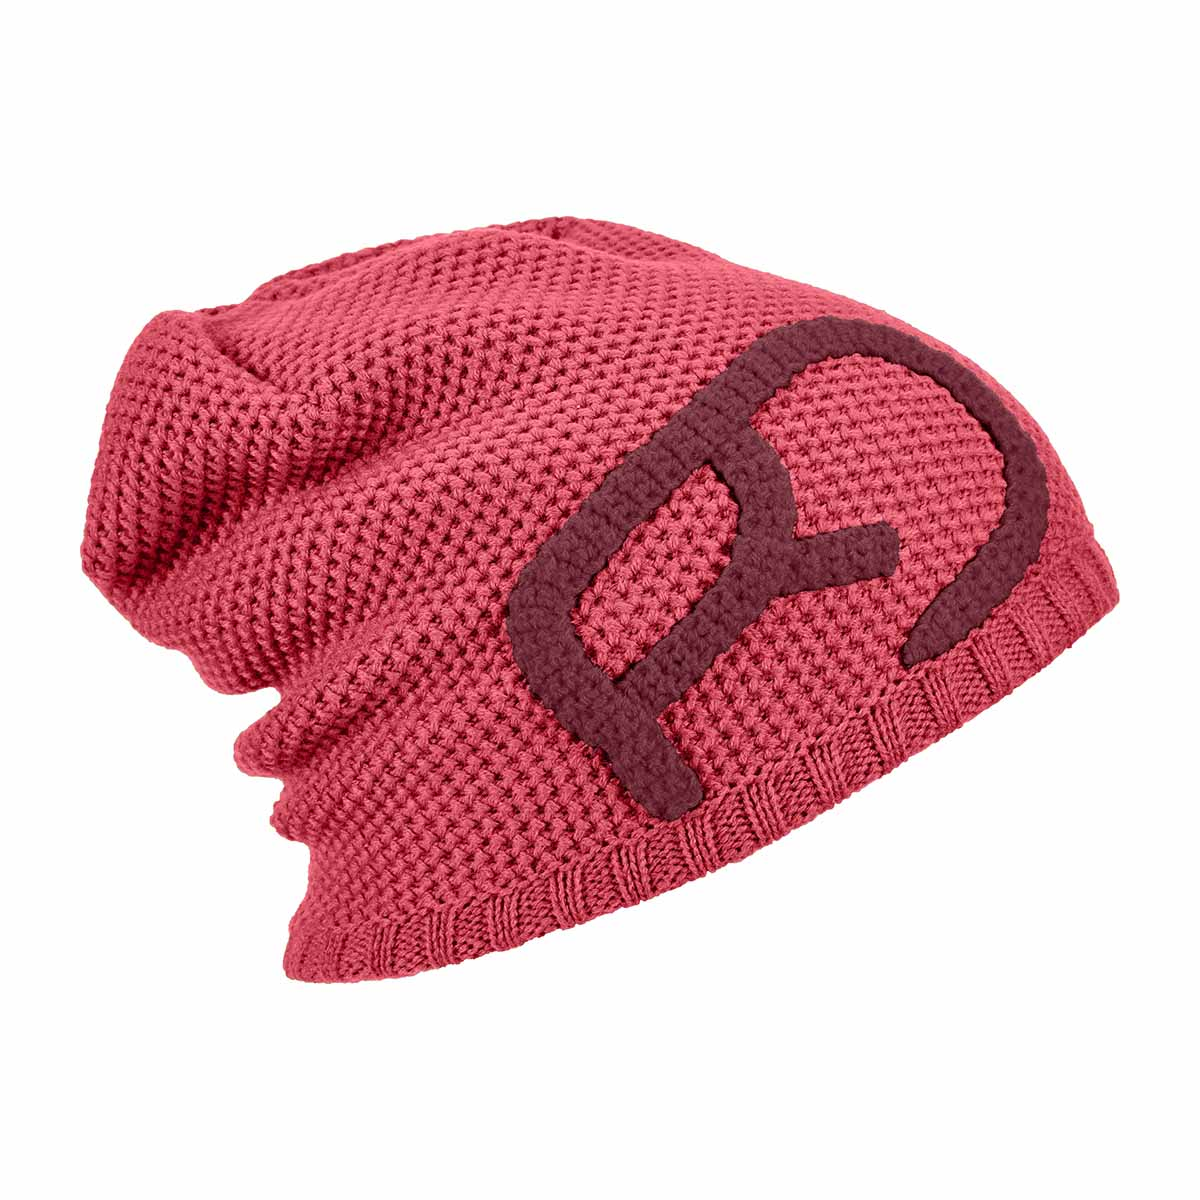 7f84d1834db 2018-19 Ortovox Rock N Wool Beanie - Anything Technical